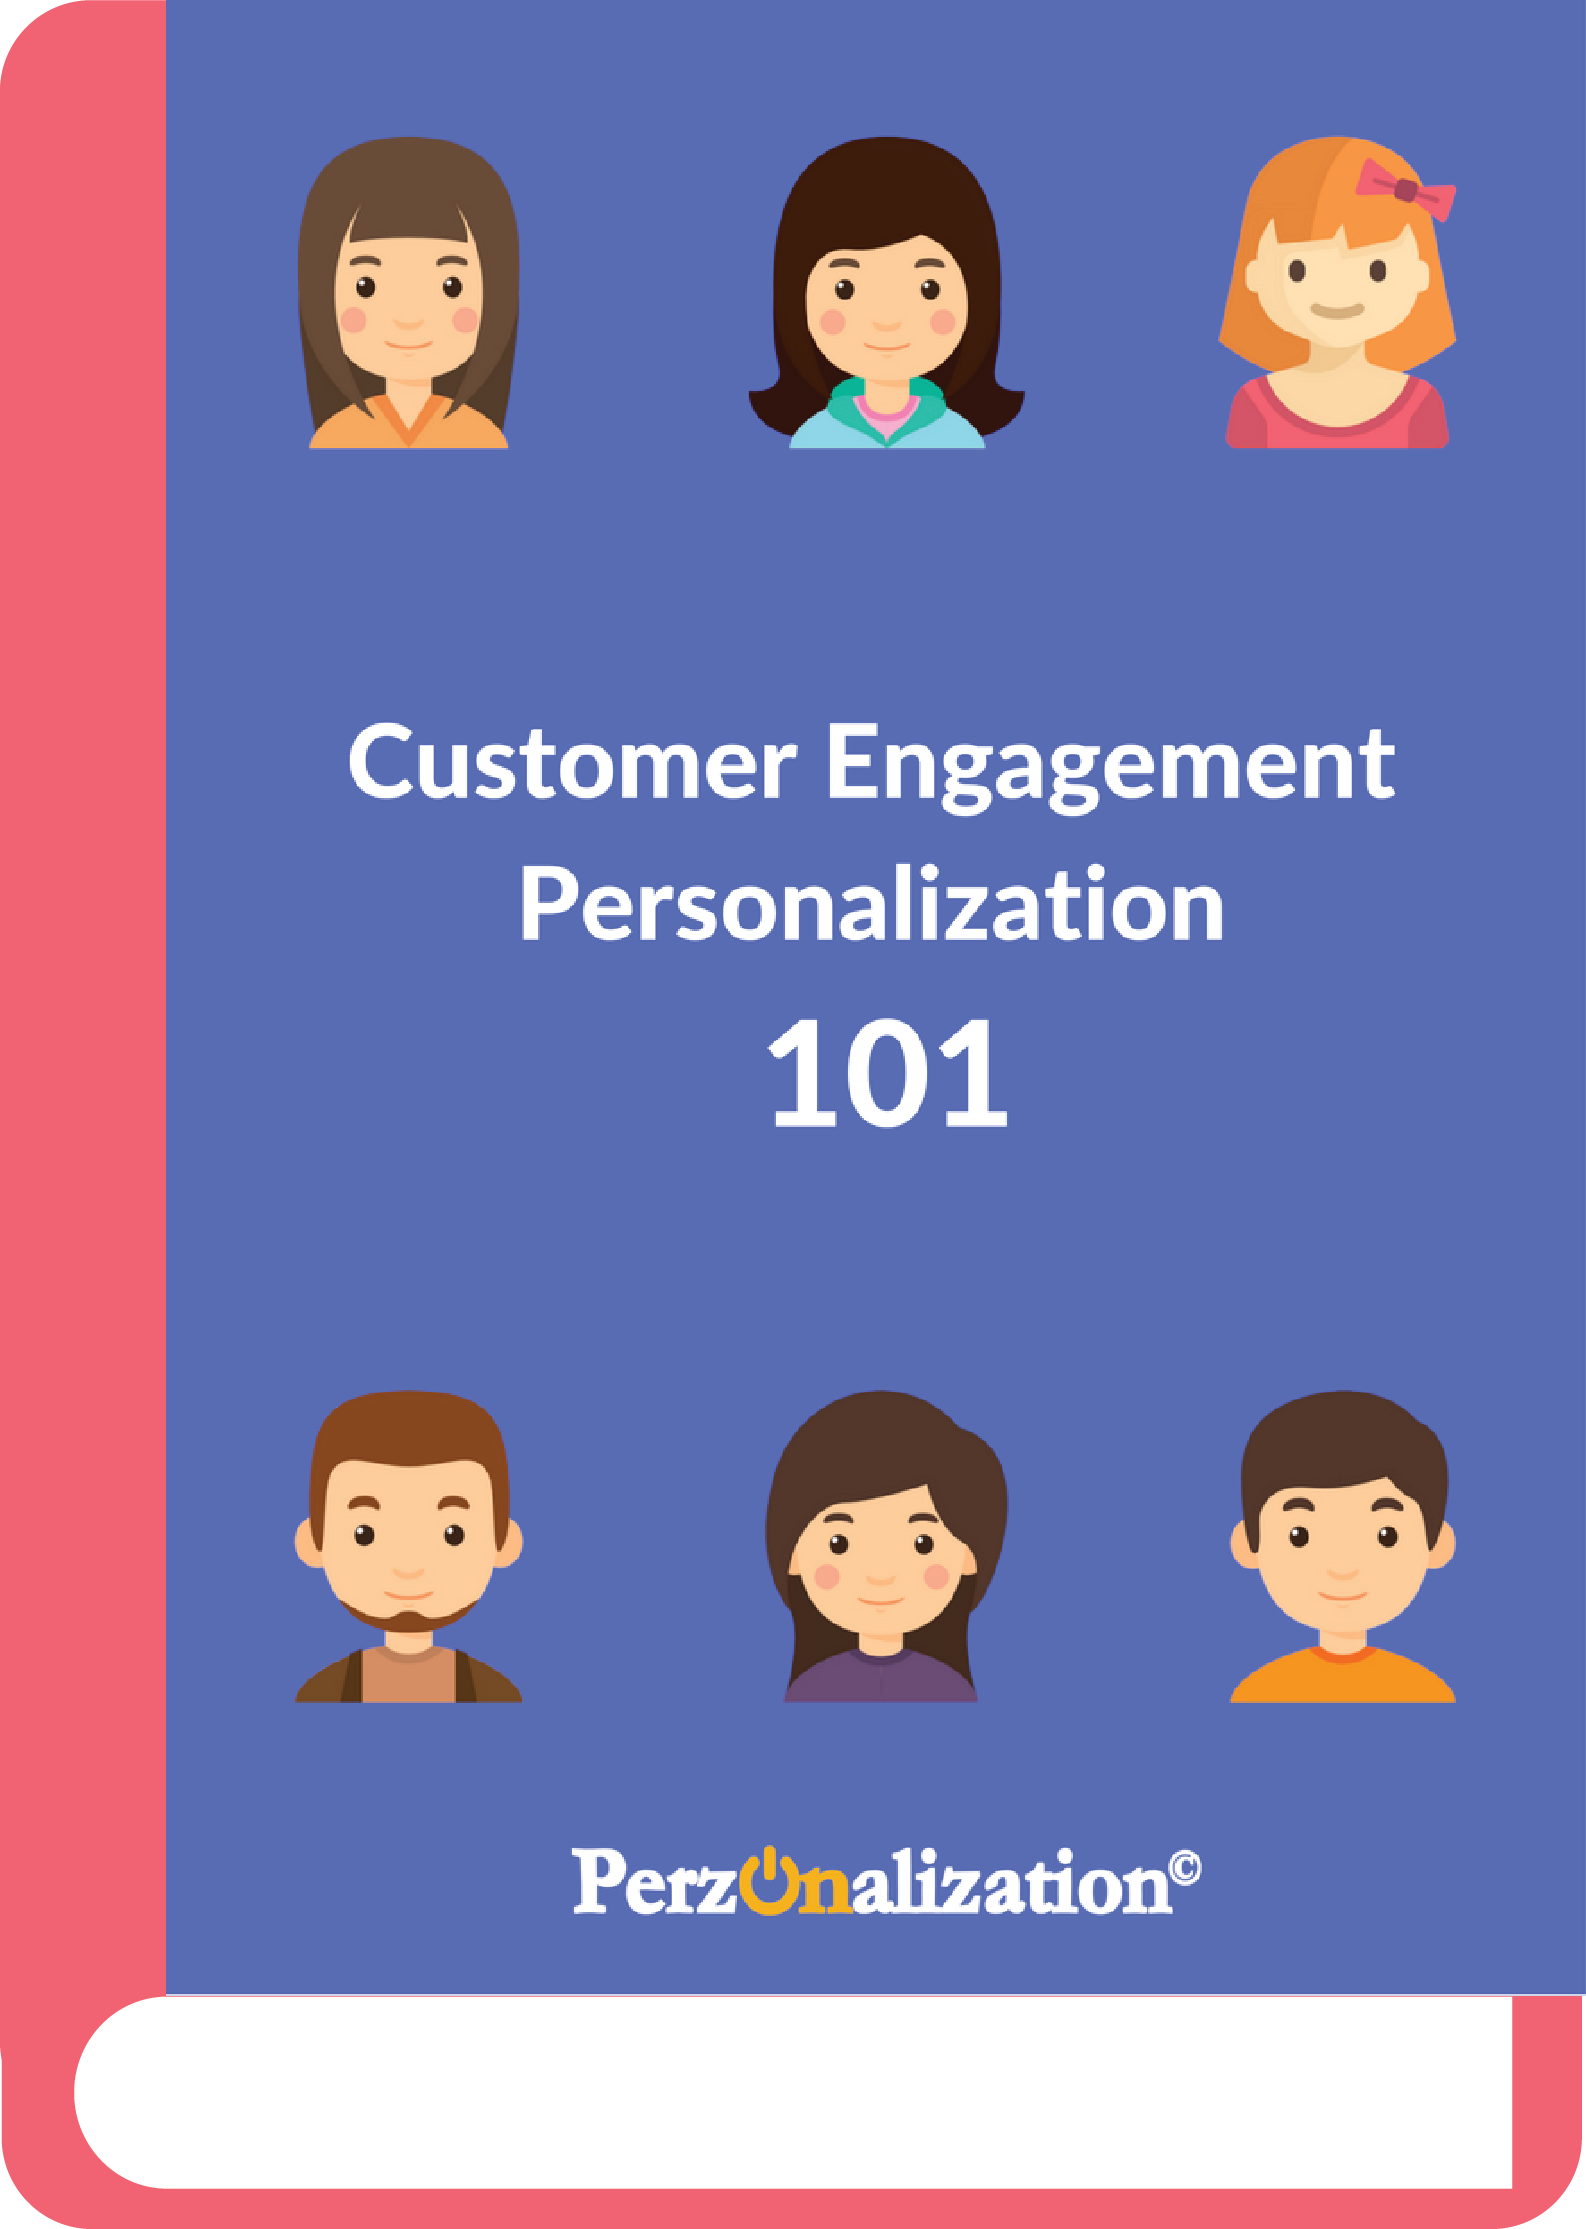 Customer Engagement Is eCommerce's Key Performance Indicator And Investing On Personalization Is a Great Way To Drive Engagement and Customer Loyalty. Find out more on this free eBook!